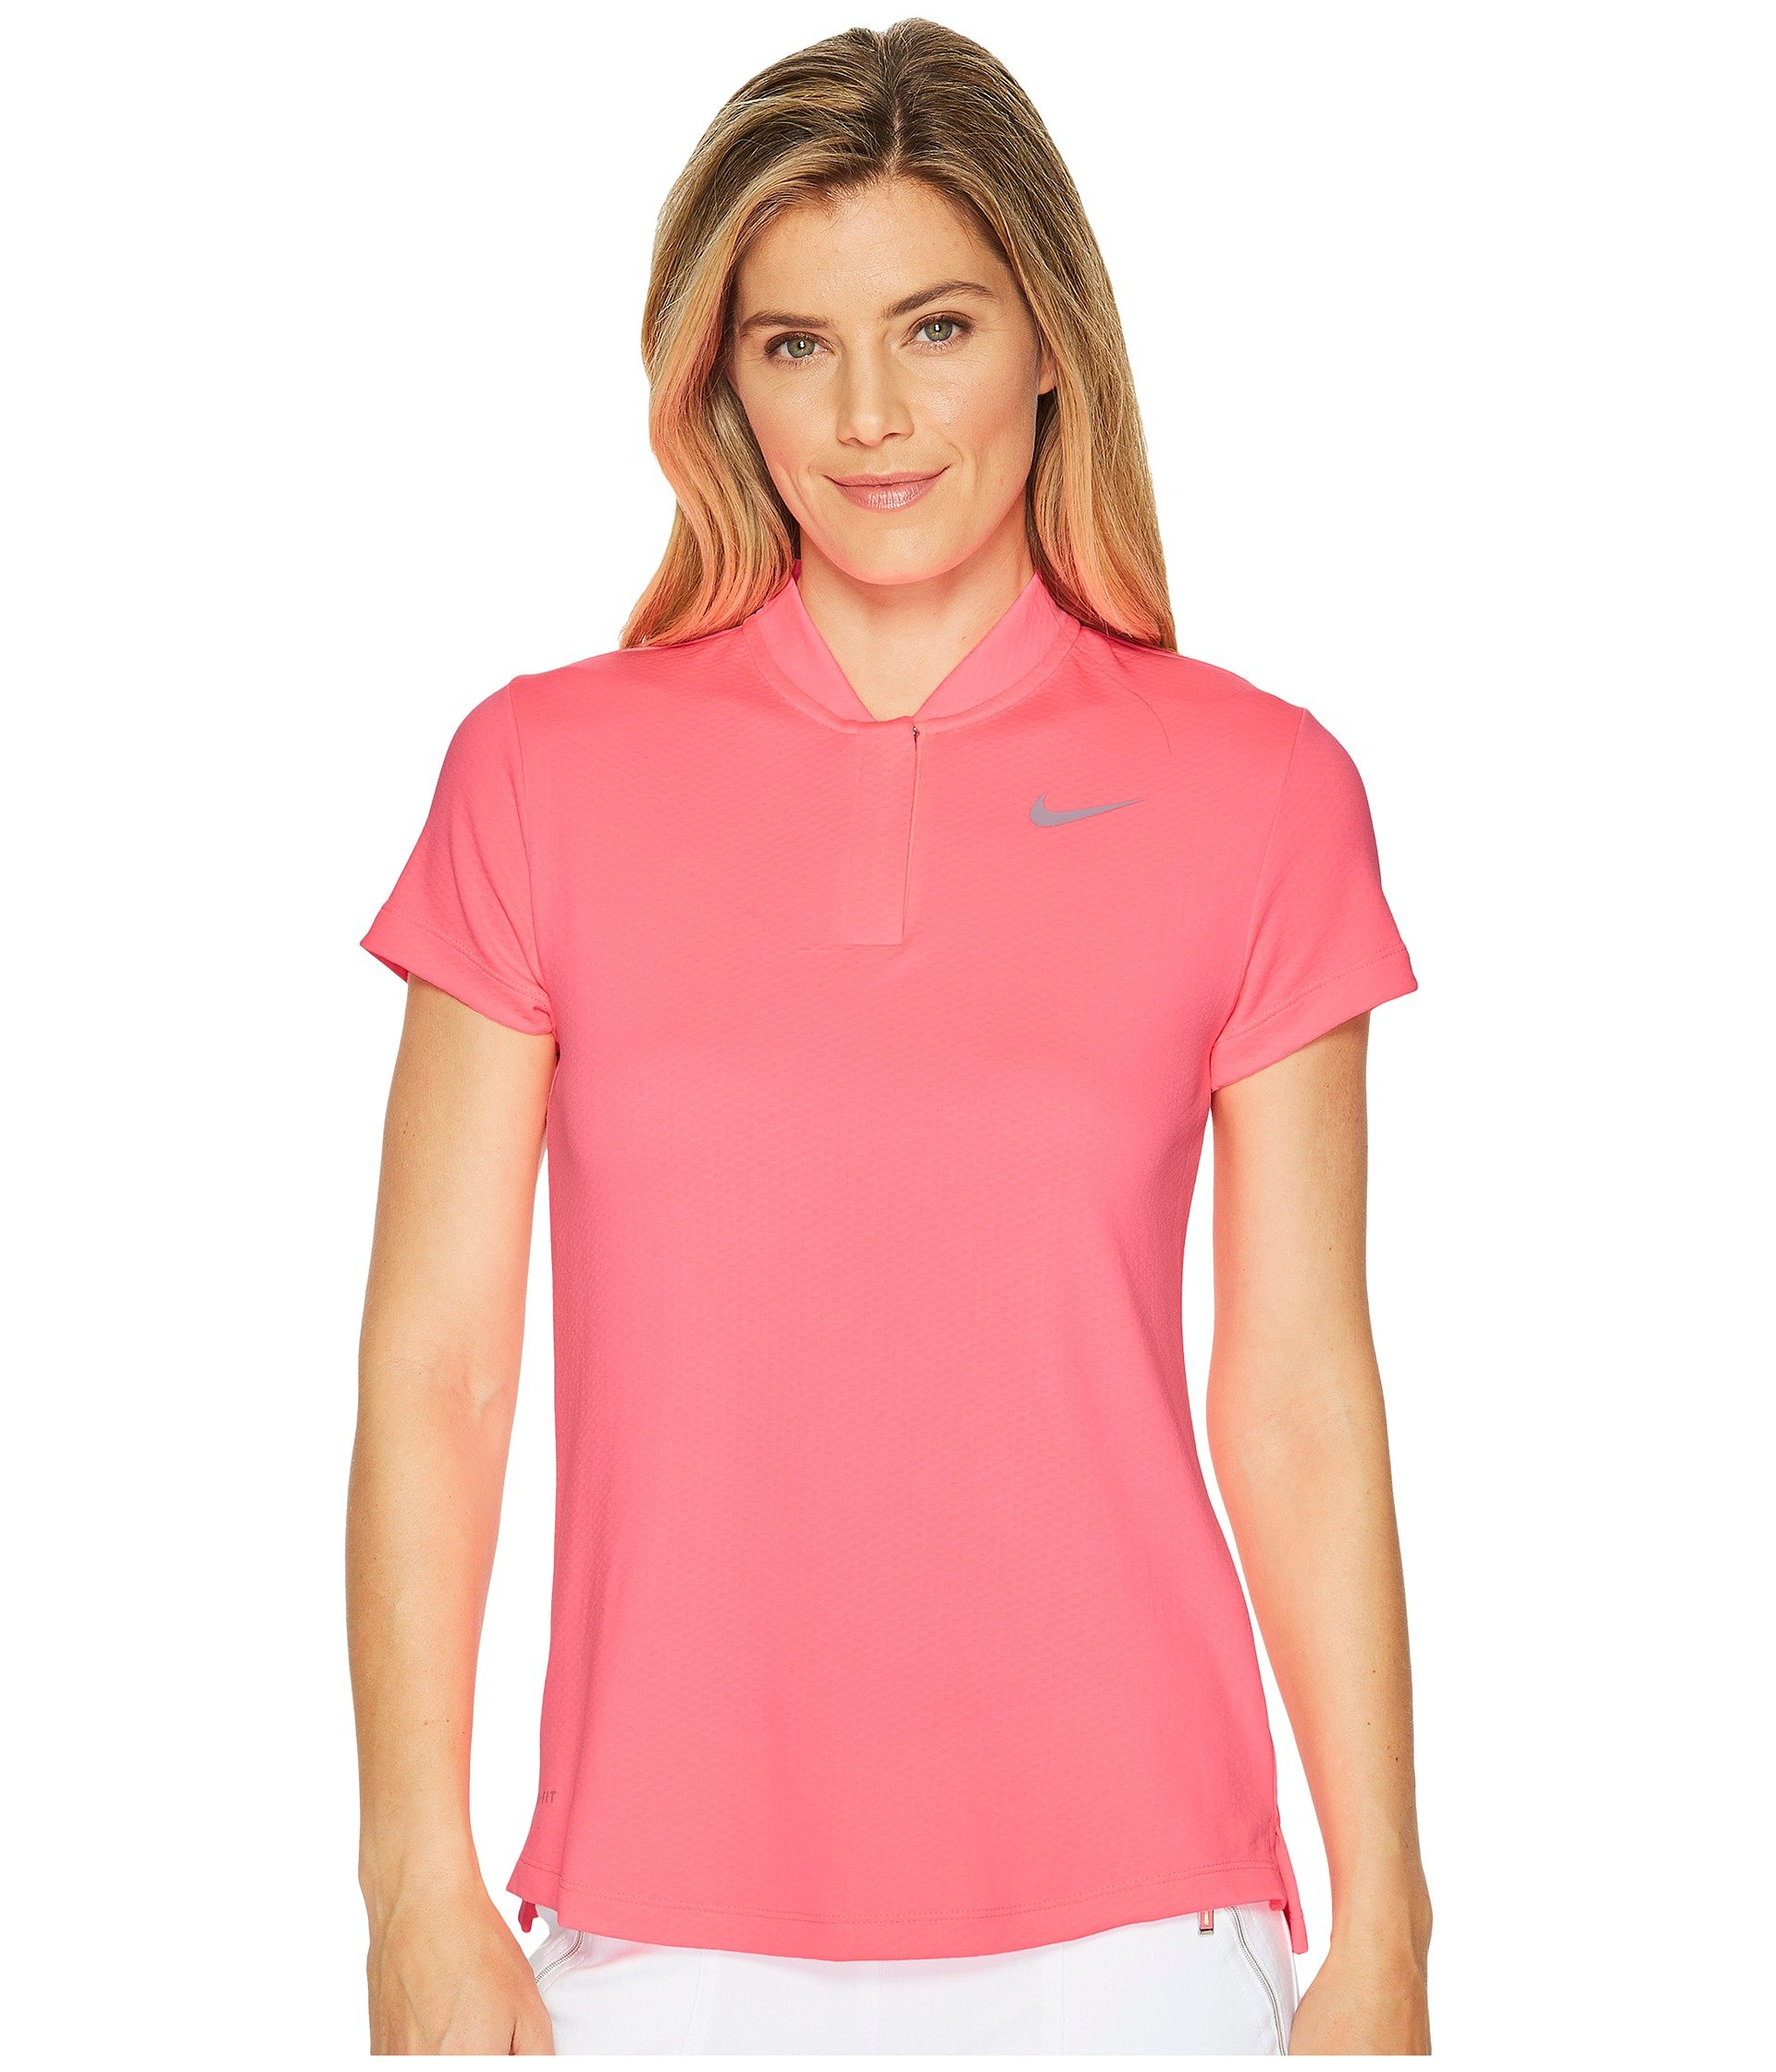 NIKE Women's Dry Short Sleeve Blade Golf Polo, Sunset Pulse/Flat Silver, X-Small